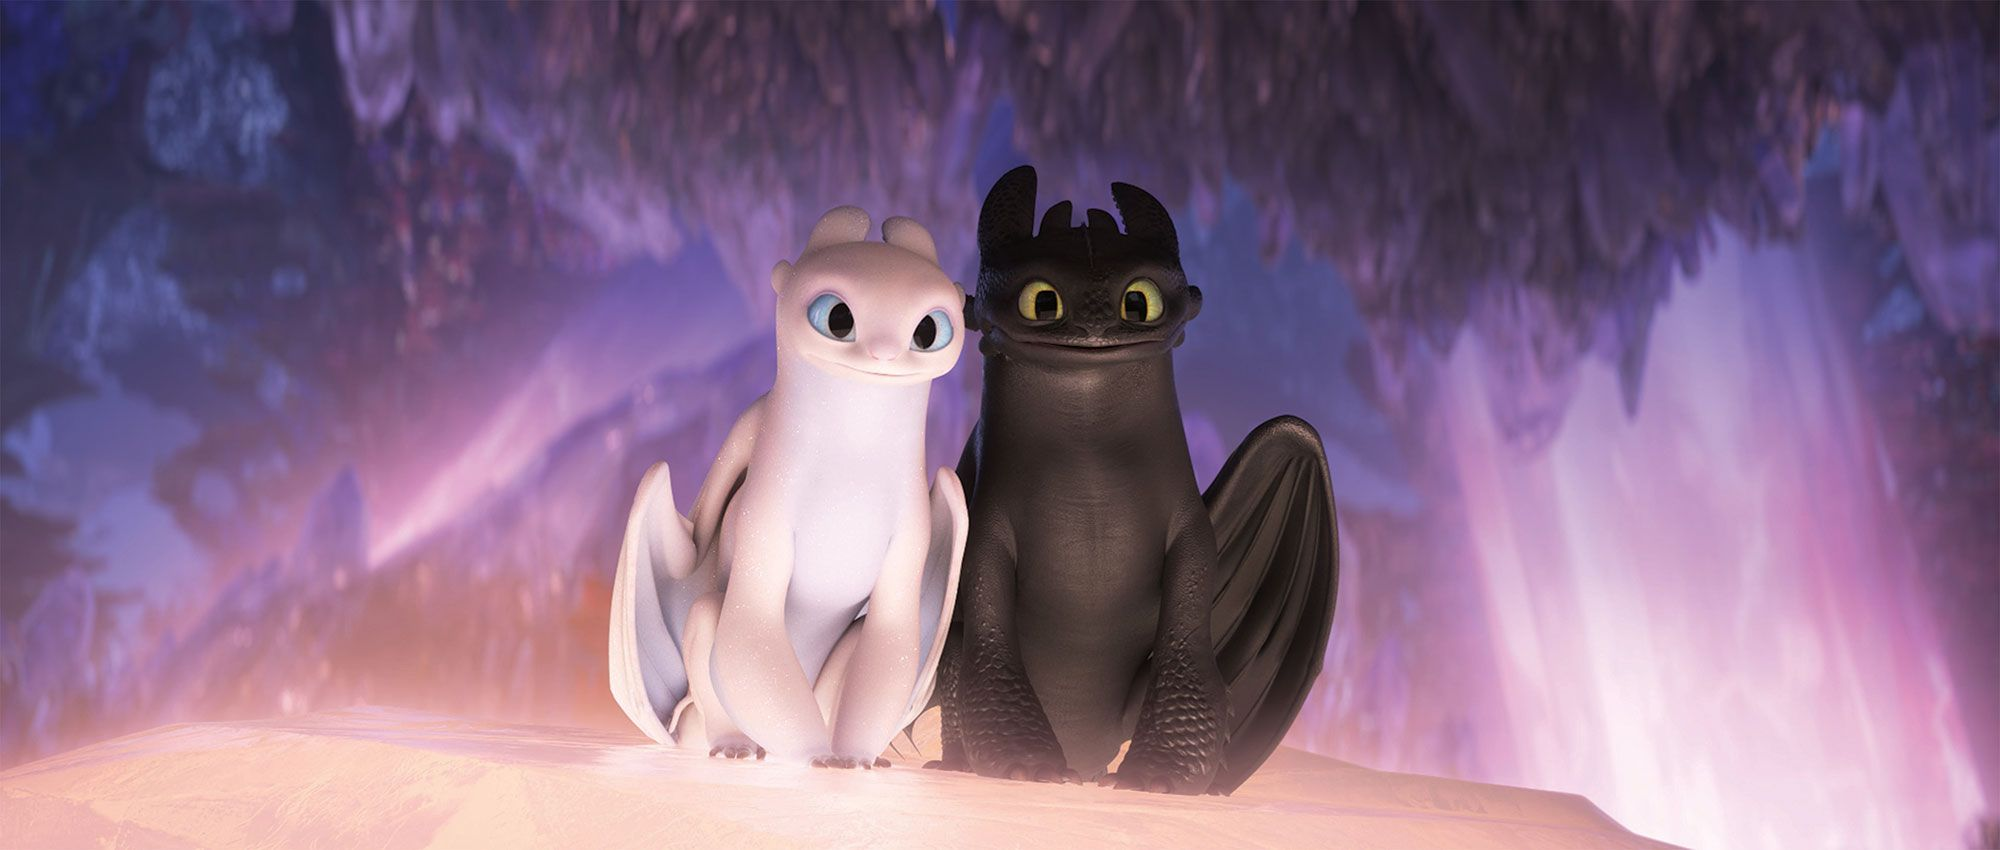 How To Train Your Dragon 3 Director On What Cured His Sequel